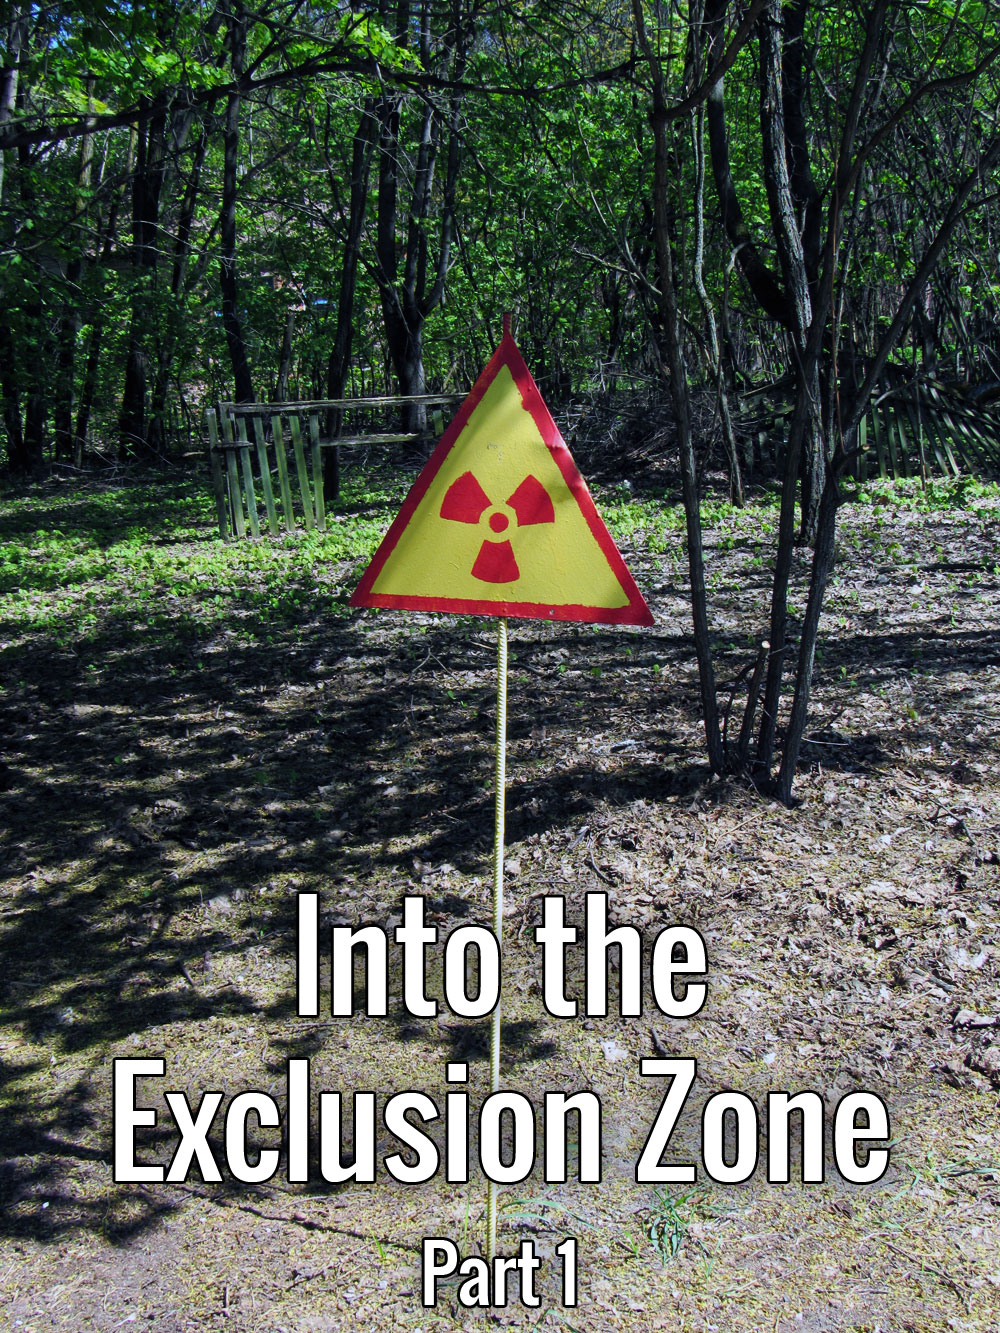 Into the Exclusion Zone - Part 1